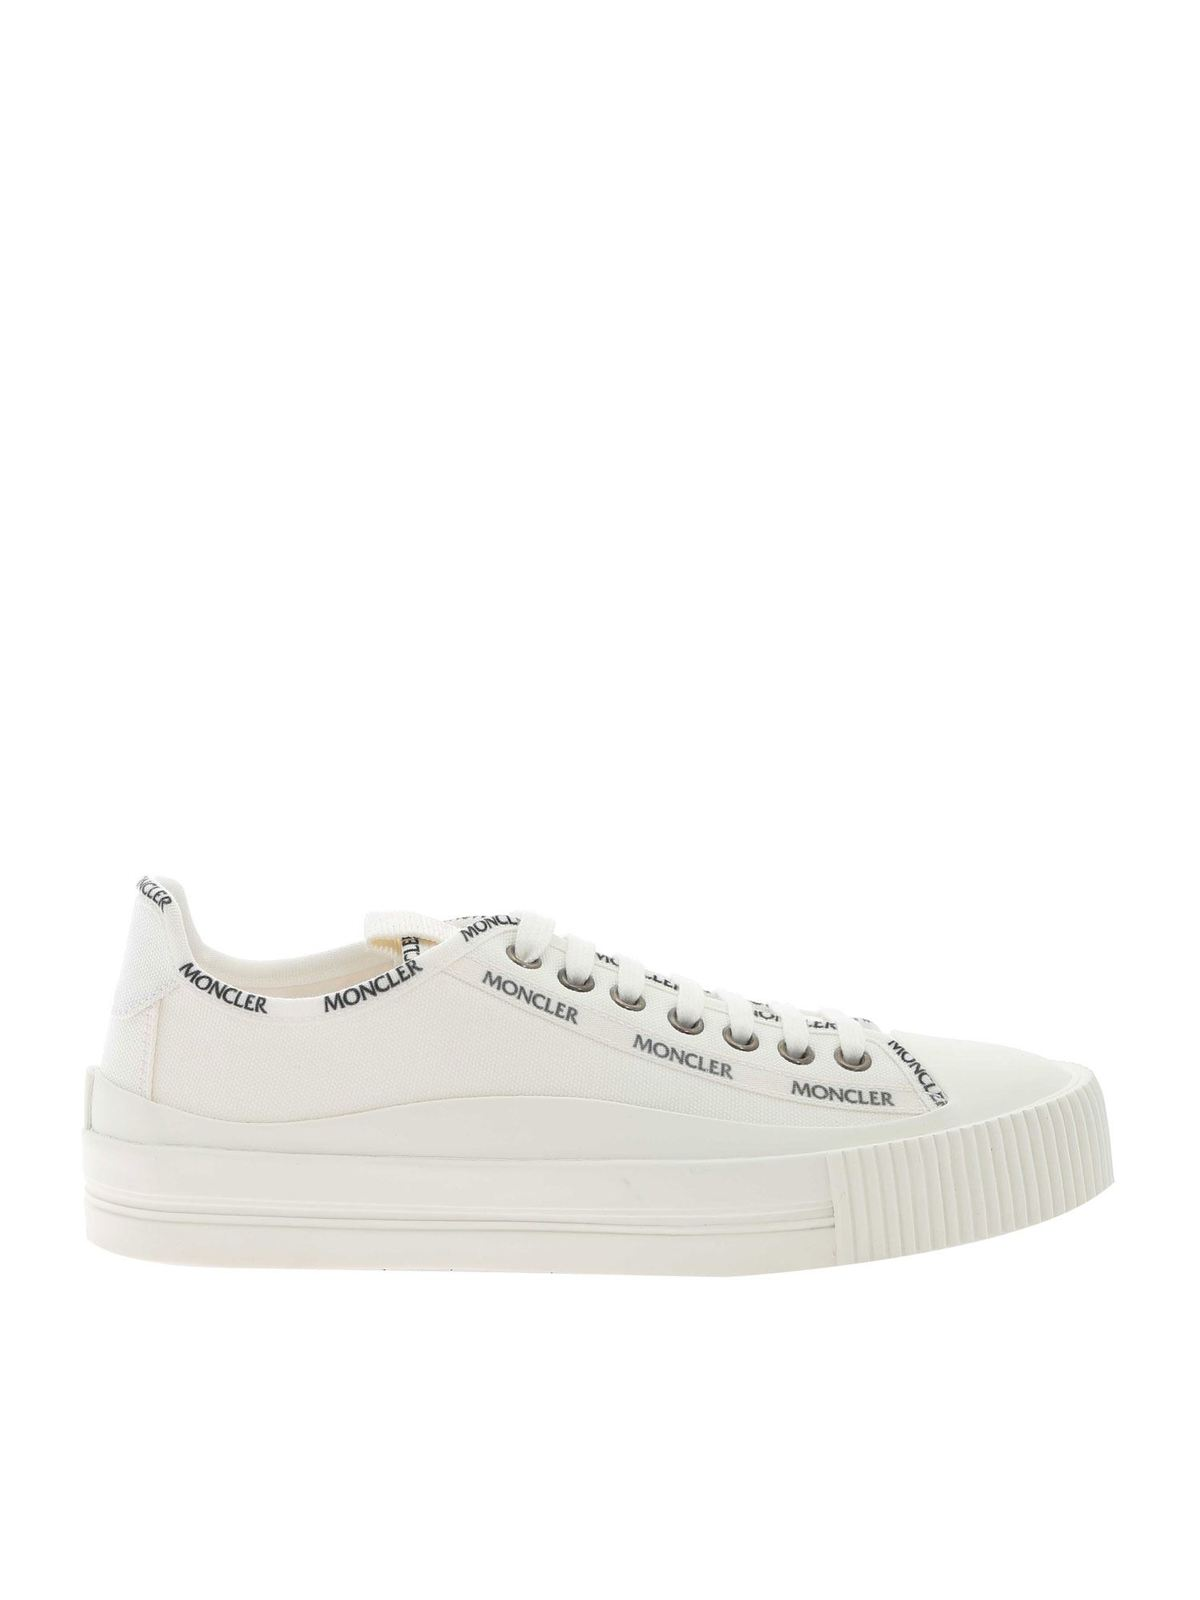 Moncler Canvases GLISSIERE SNEAKERS IN WHITE